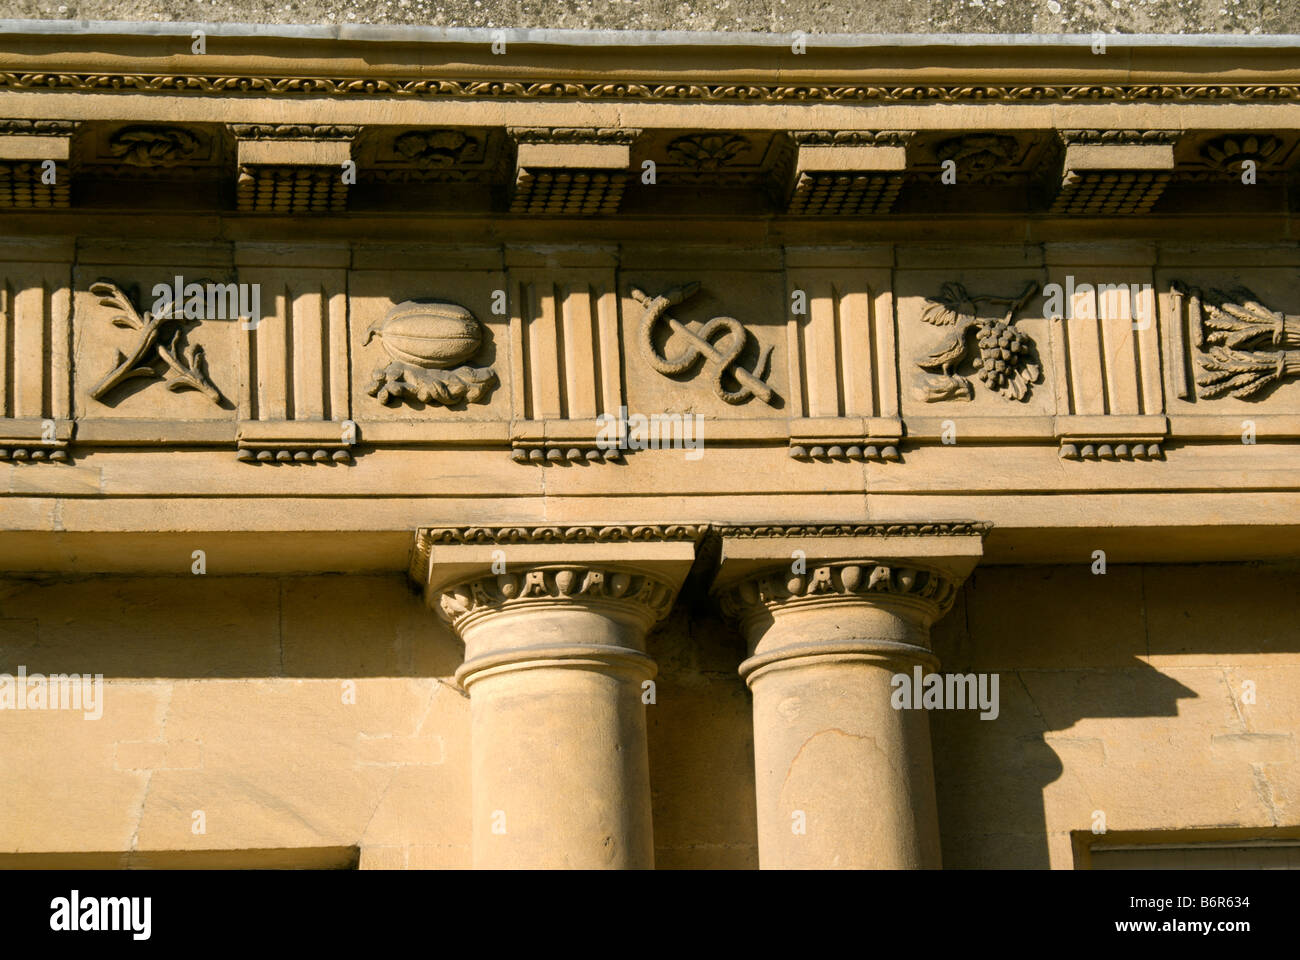 detail of part of the 525 pictoral emblems part of the frieze of the doric entablature of the circus bath somerset - Stock Image